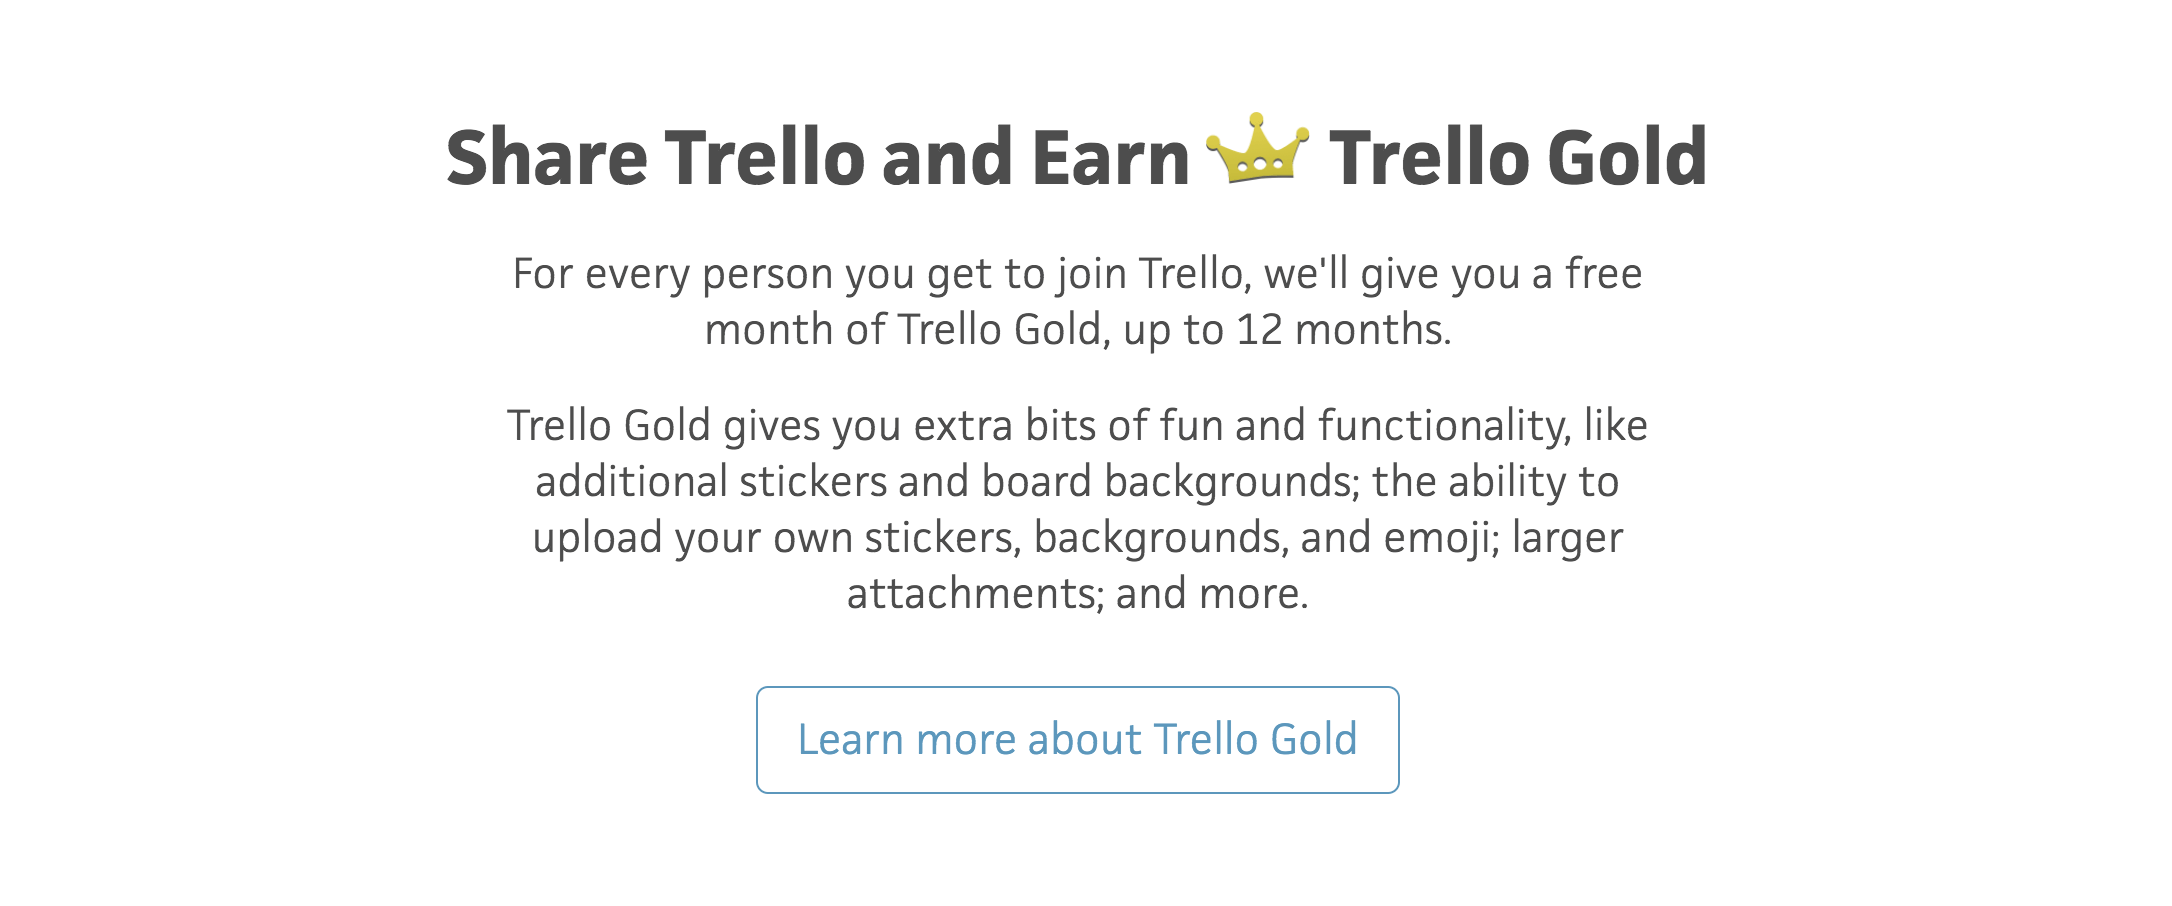 34-trello-referral-program